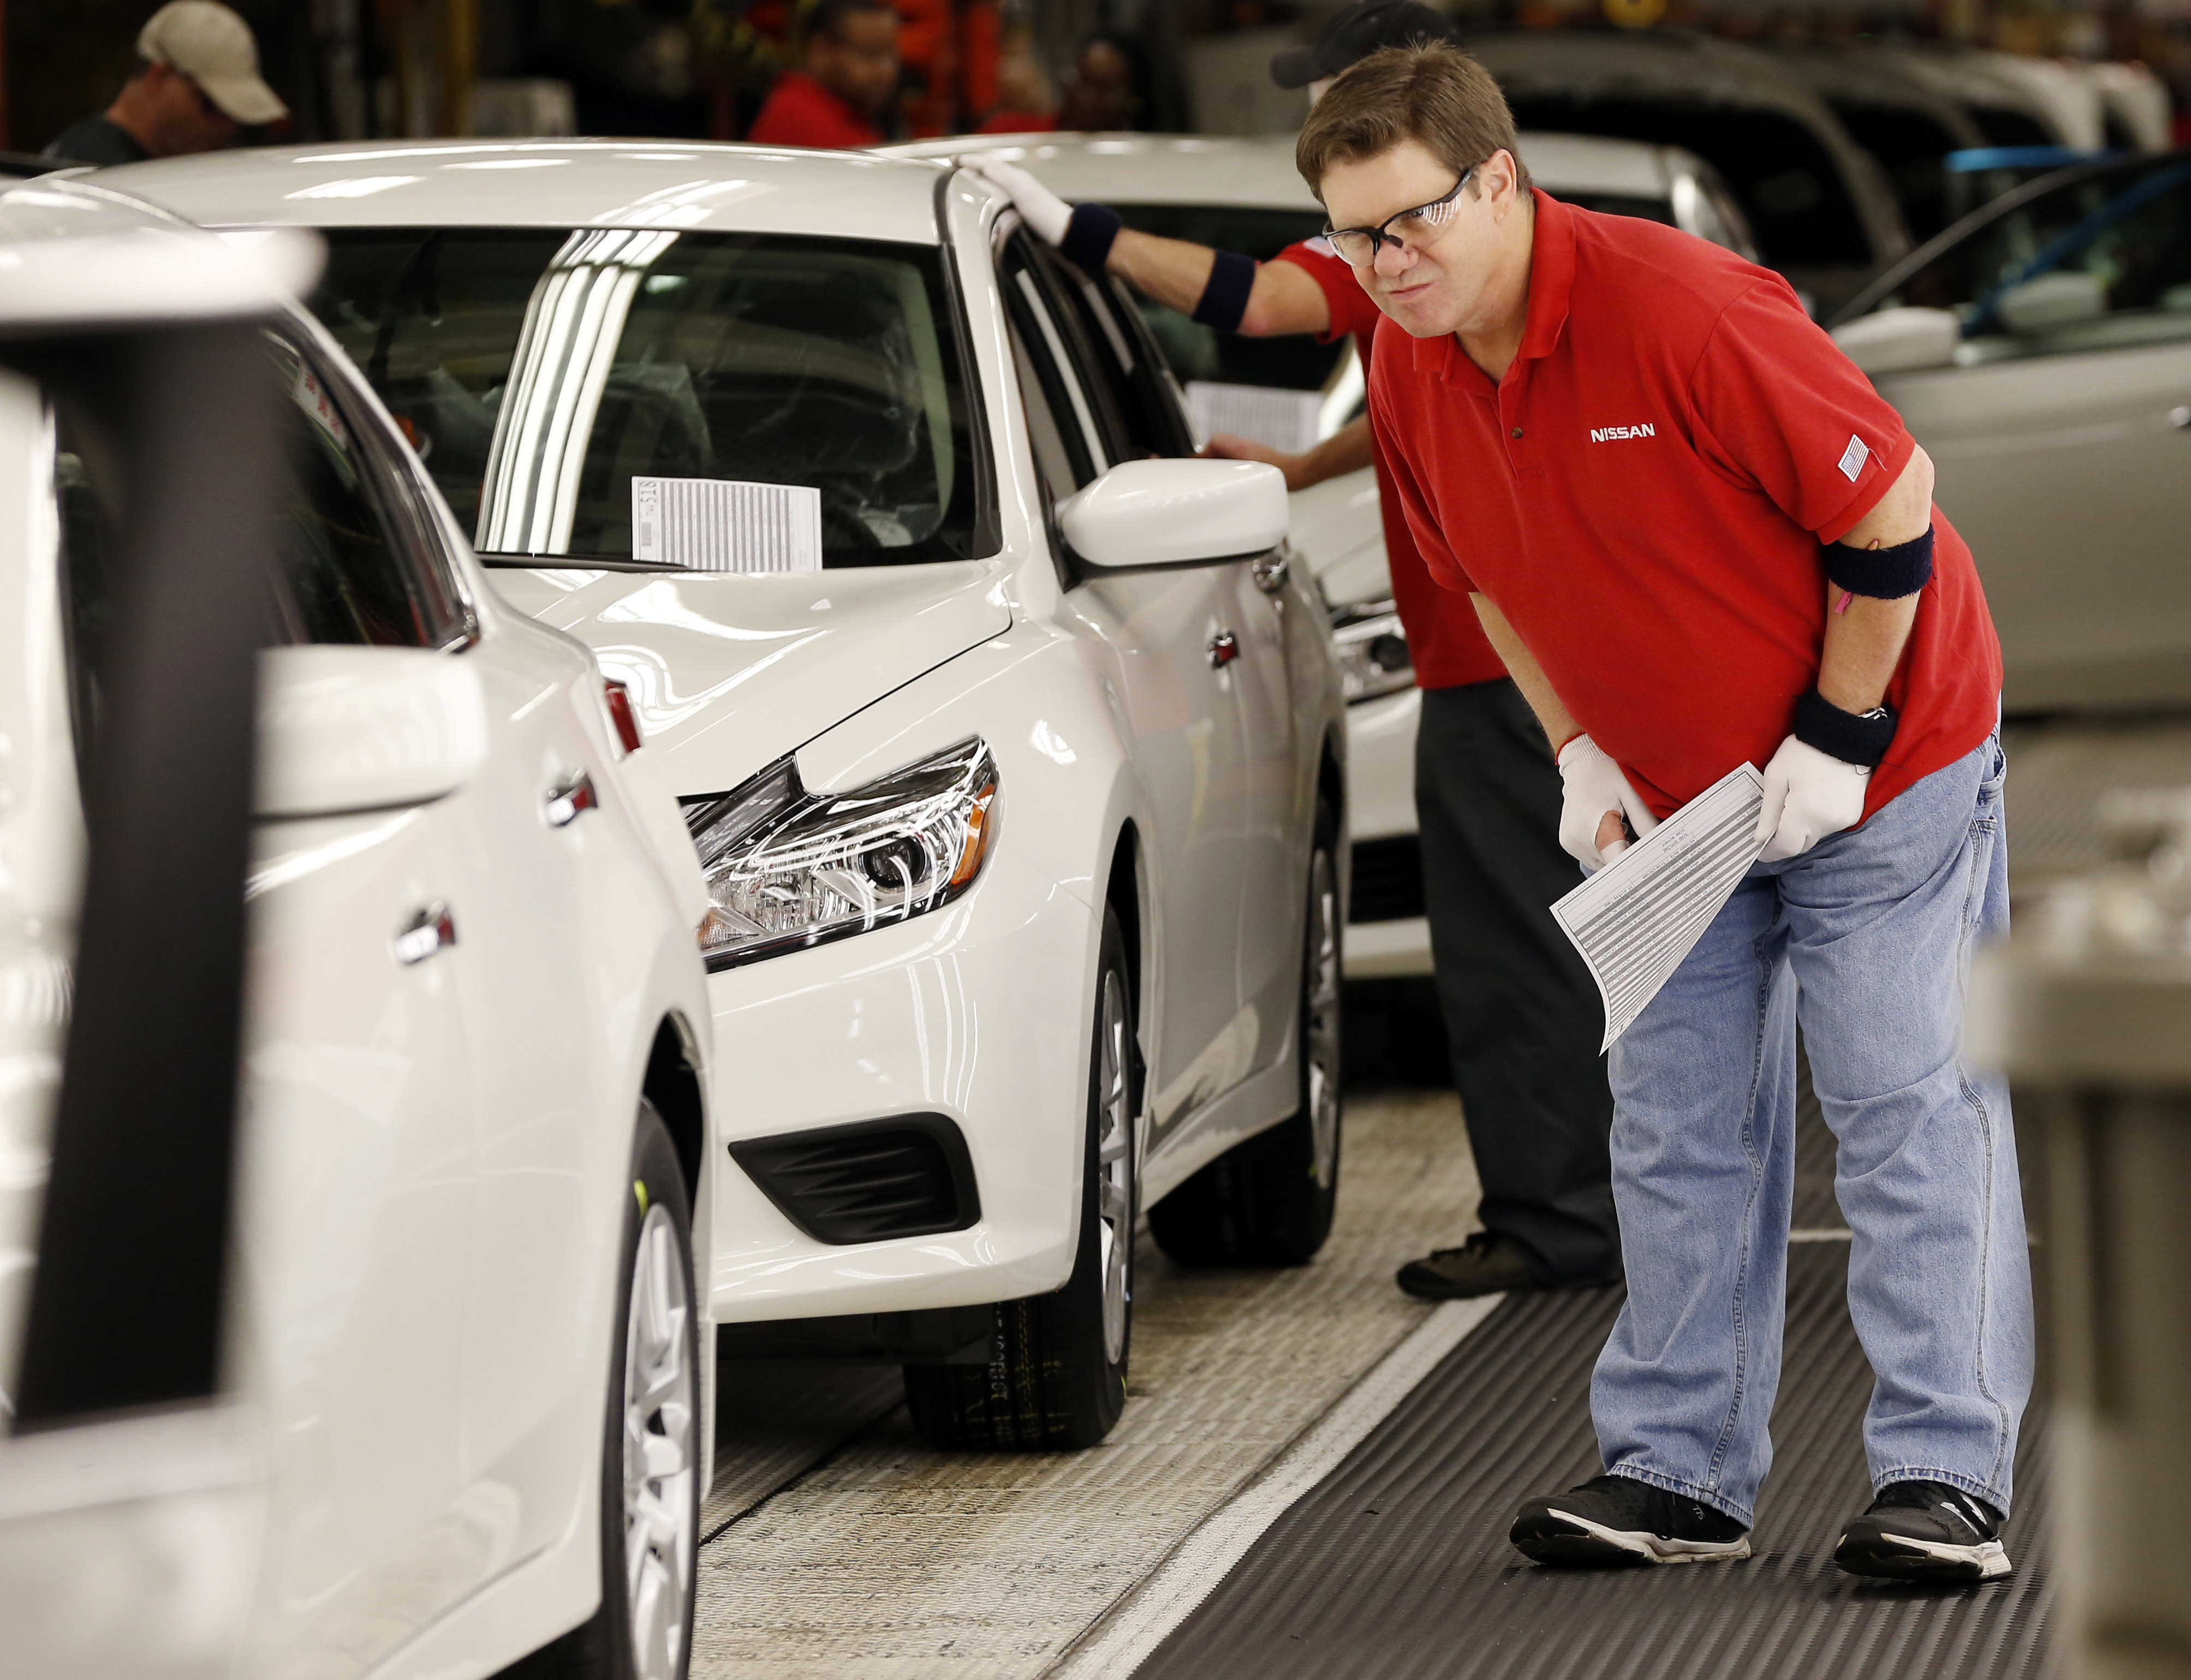 US durable goods orders slid 2.2 percent in May